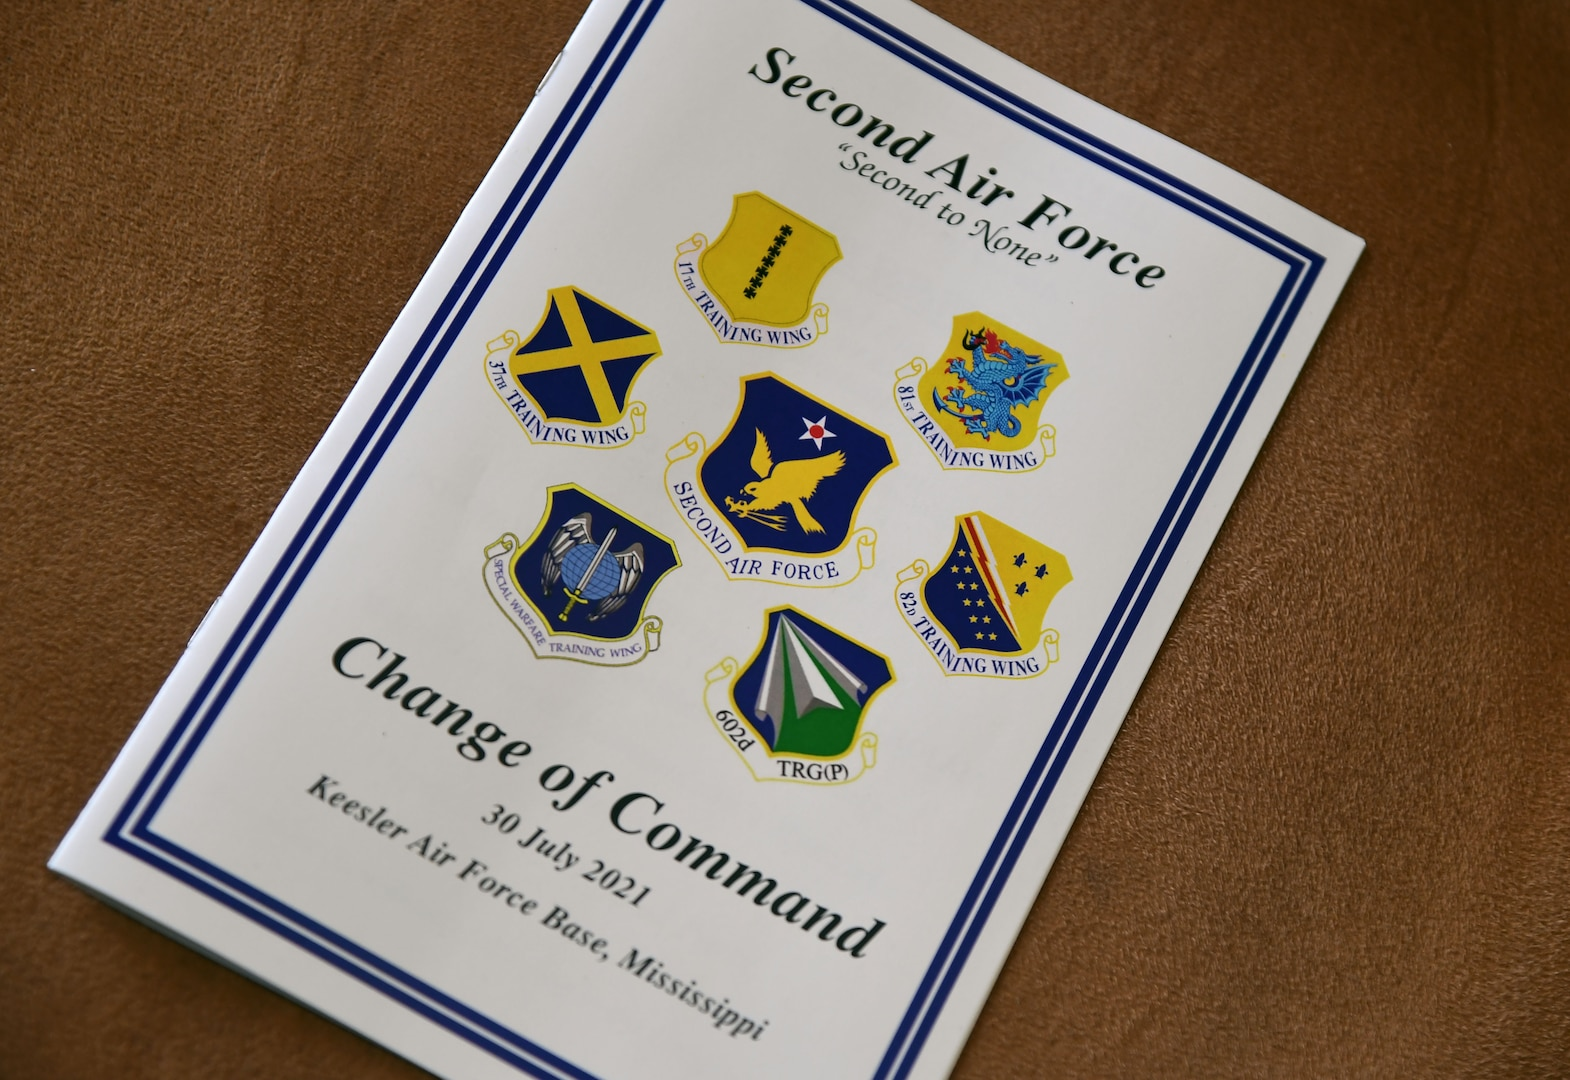 A pamphlet is on display during the Second Air Force change of command ceremony inside the Bay Breeze Event Center at Keesler Air Force Base, Mississippi, July 30, 2021. The ceremony is a symbol of command being exchanged from one commander to the next. Maj. Gen. Andrea Tullos relinquished command of the Second Air Force to Maj. Gen. Michele Edmondson. (U.S. Air Force photo by Kemberly Groue)